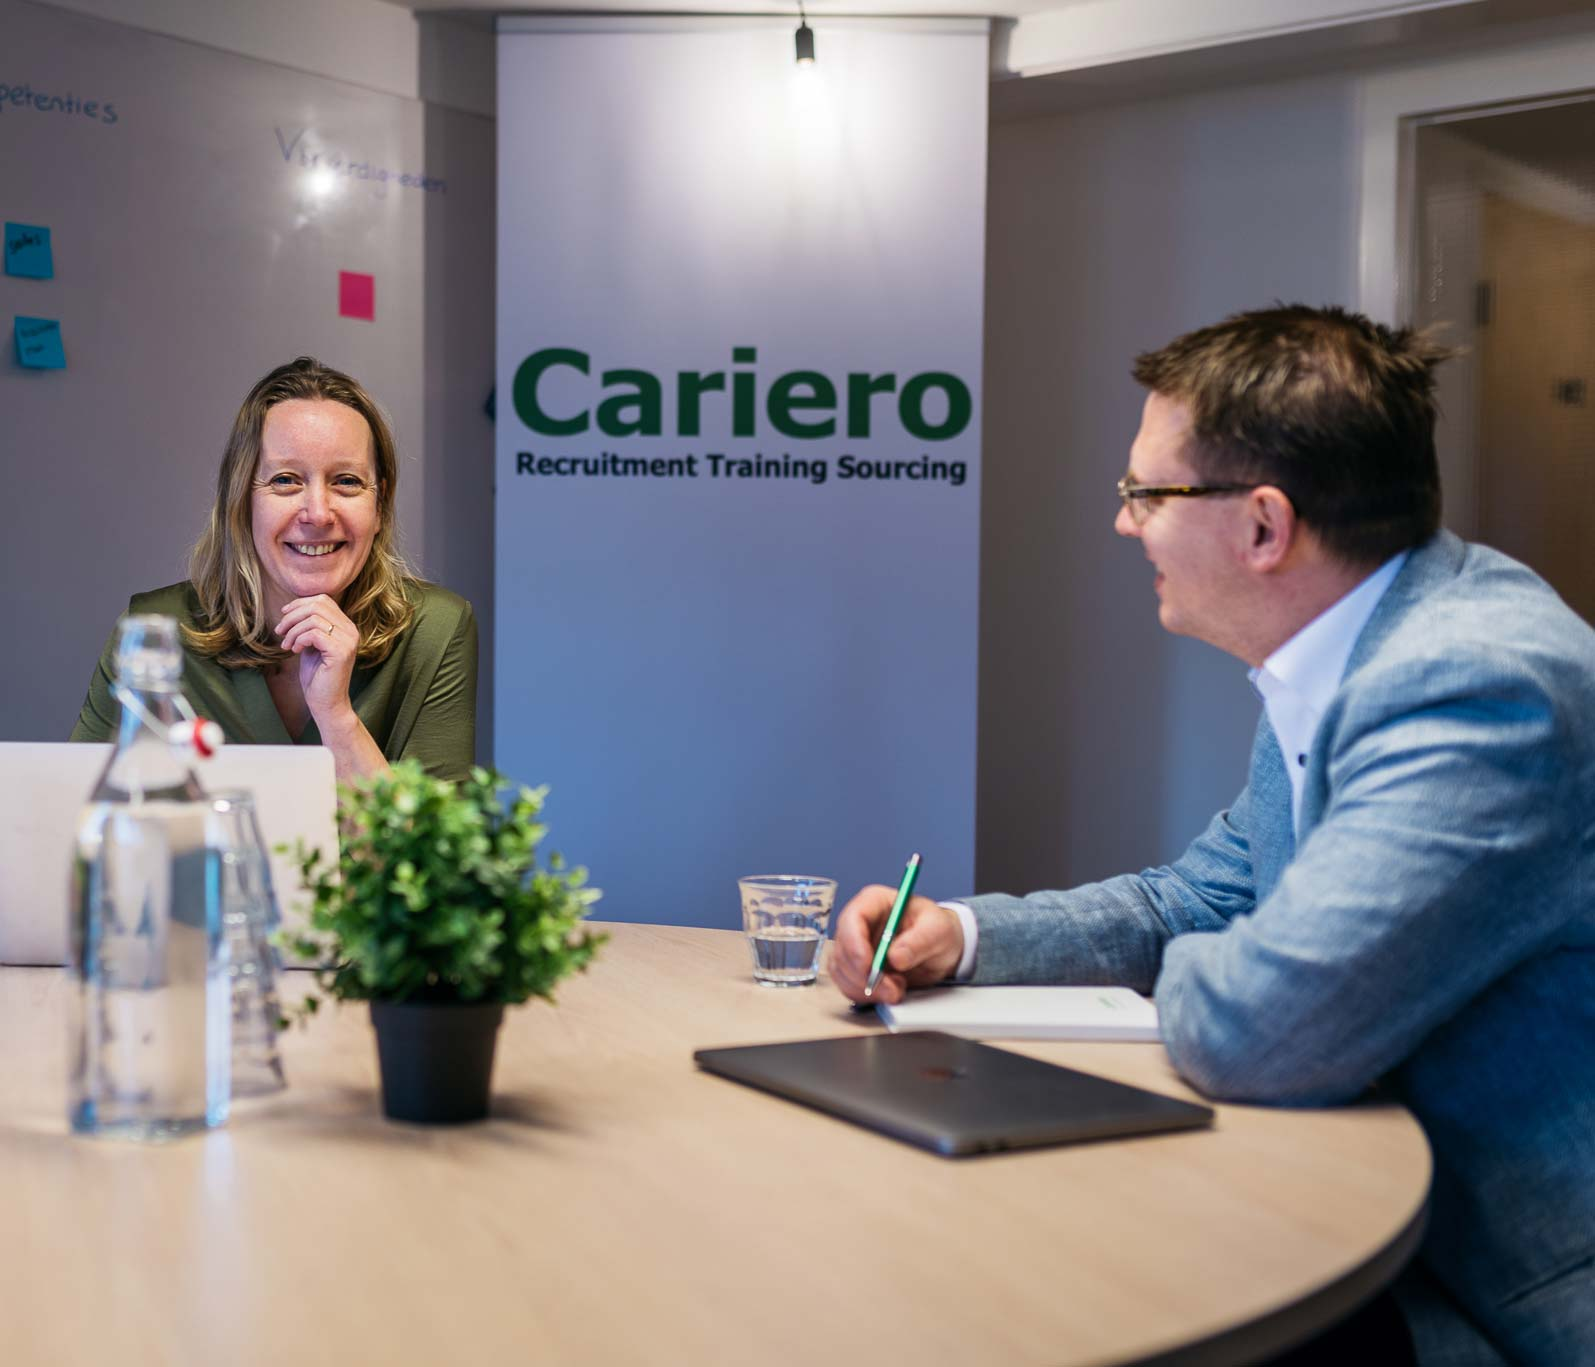 Cariero Recruitment Training Sourcing